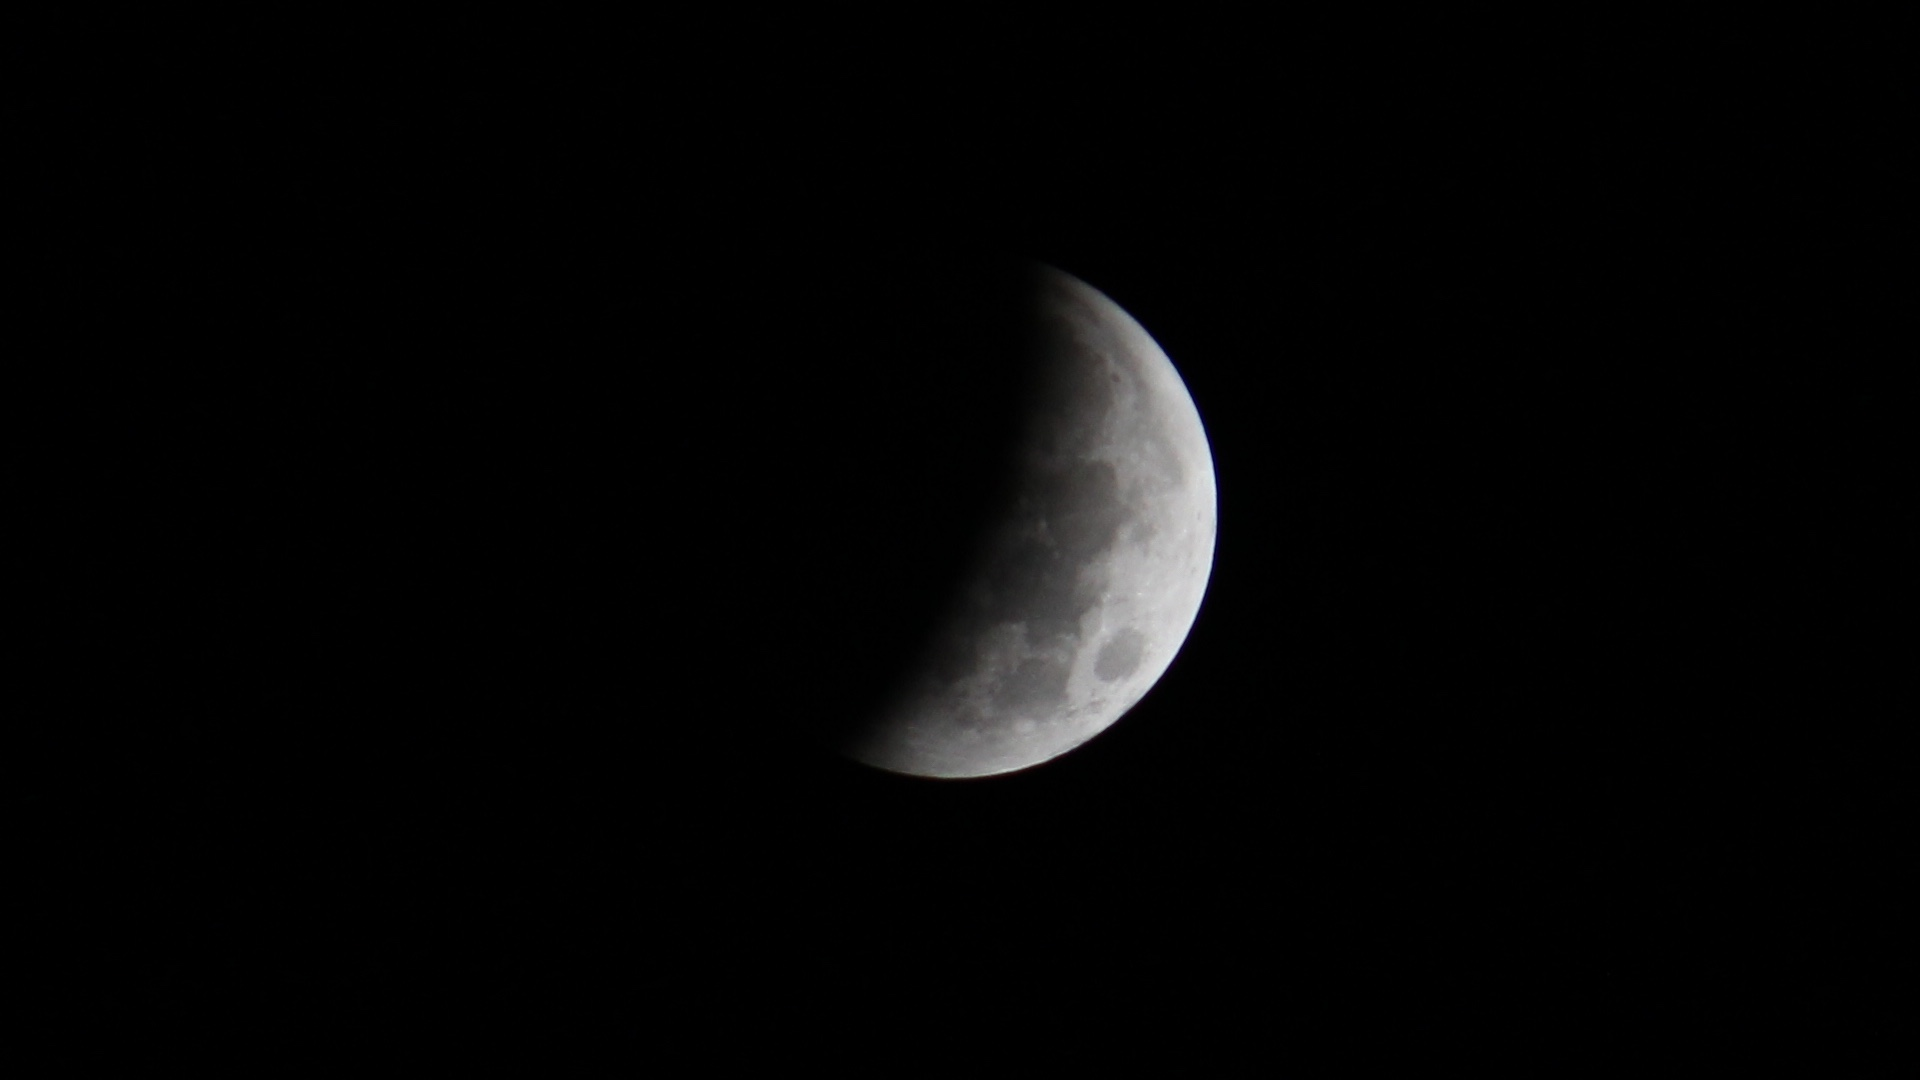 Lunar Eclipse 20141008 5